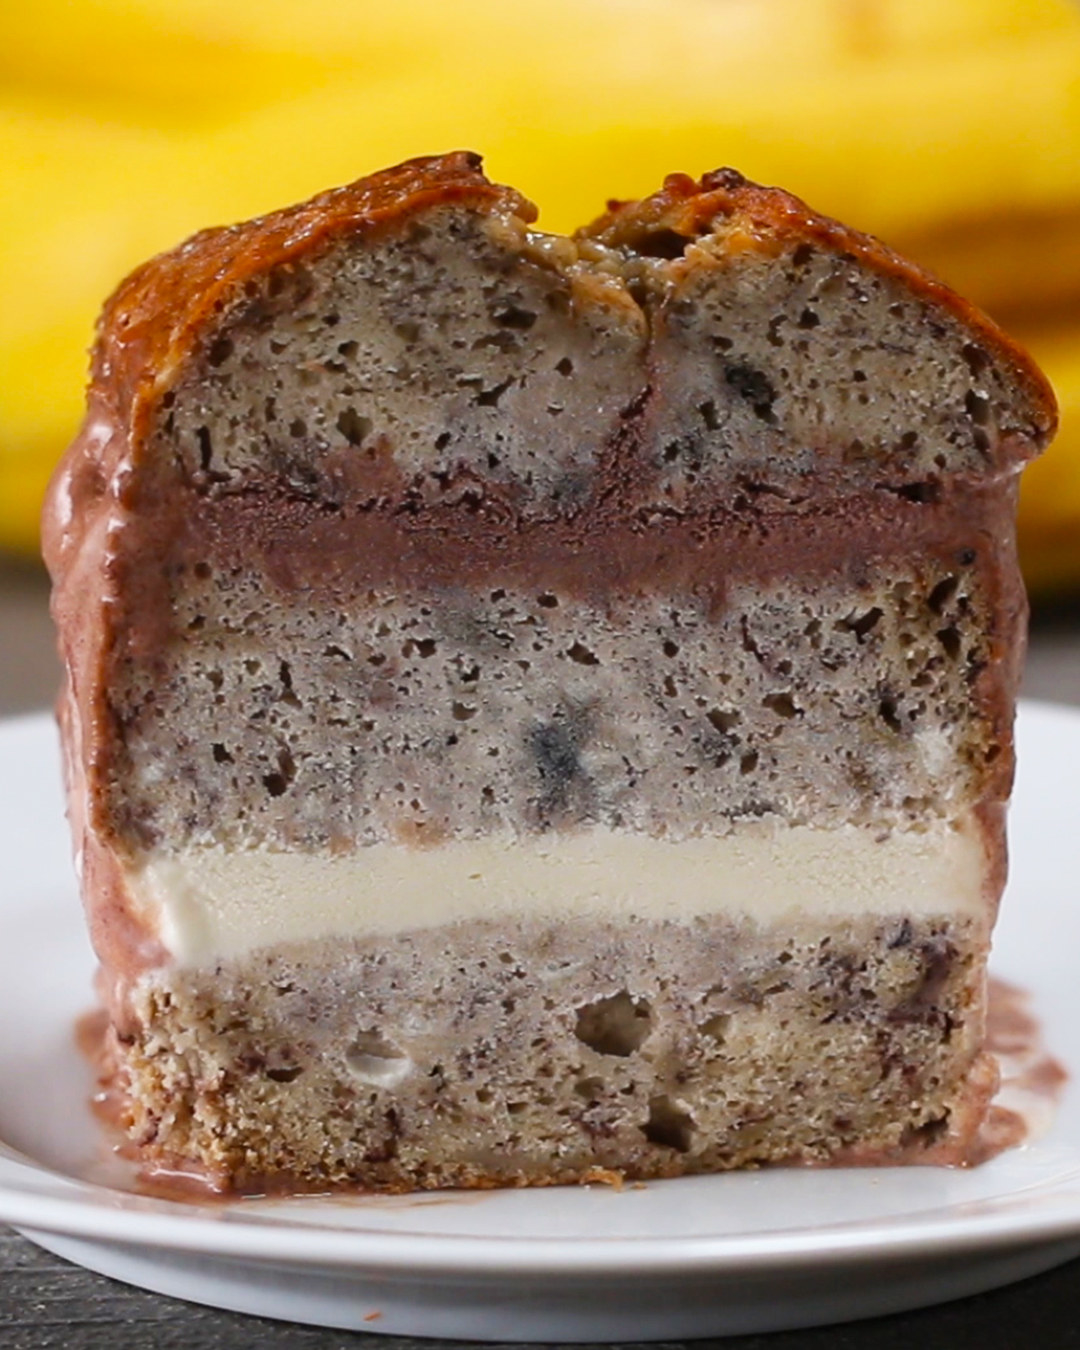 Stop What You're Doing And Make This Banana Bread Ice Cream Cake Right Now